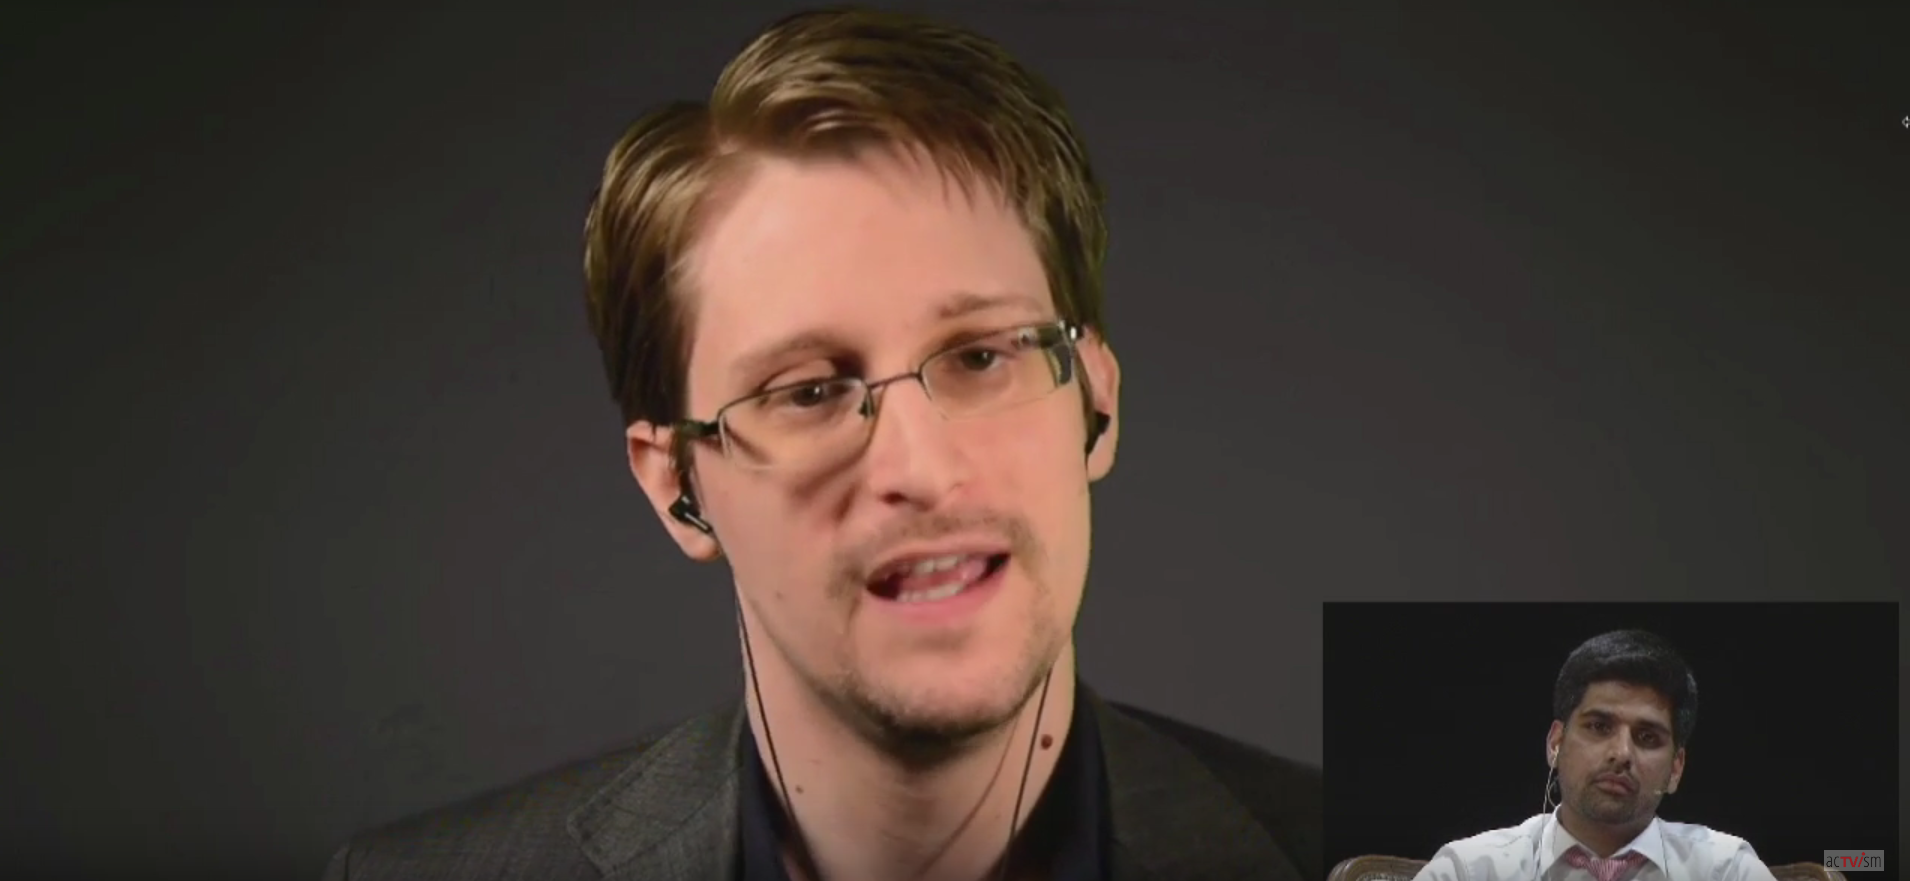 internationalen Experten Edward Snowden acTVism Munich